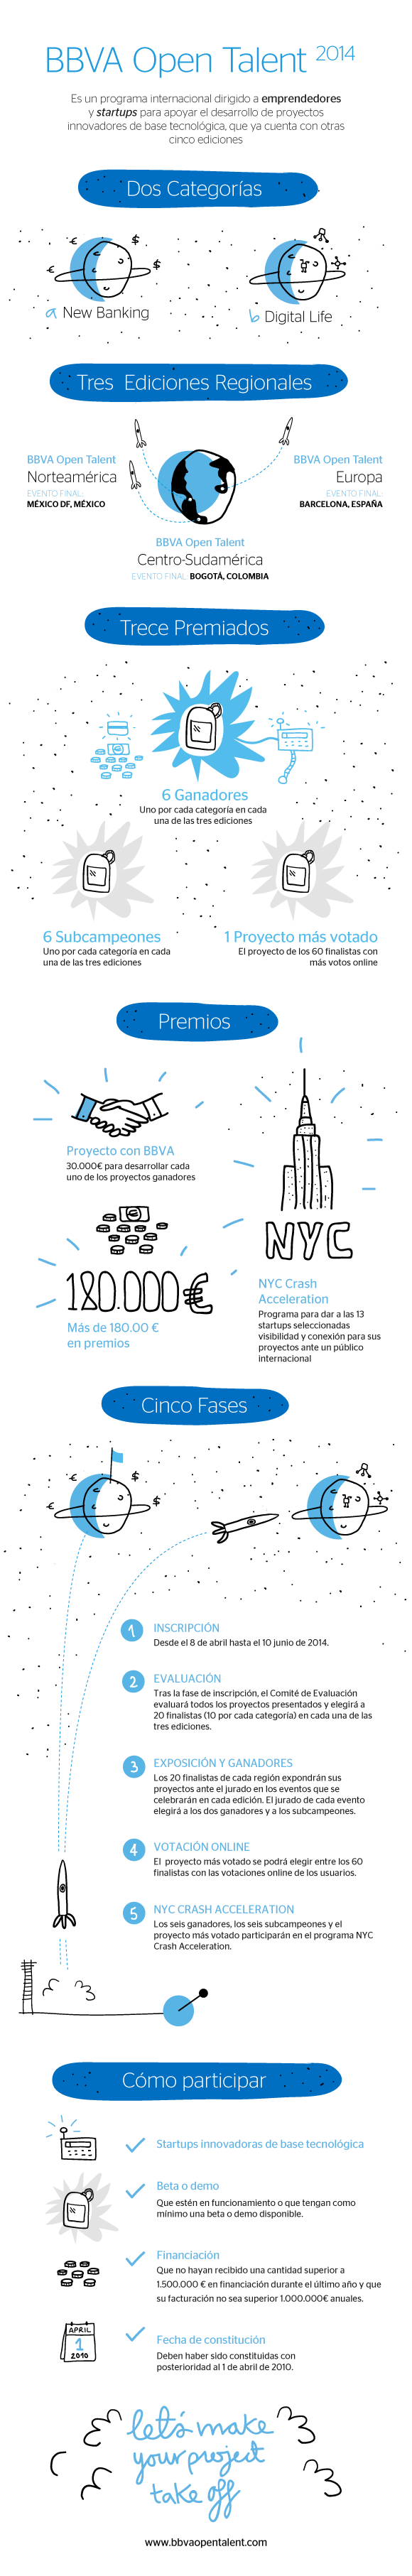 infografia_bbva_open_talent